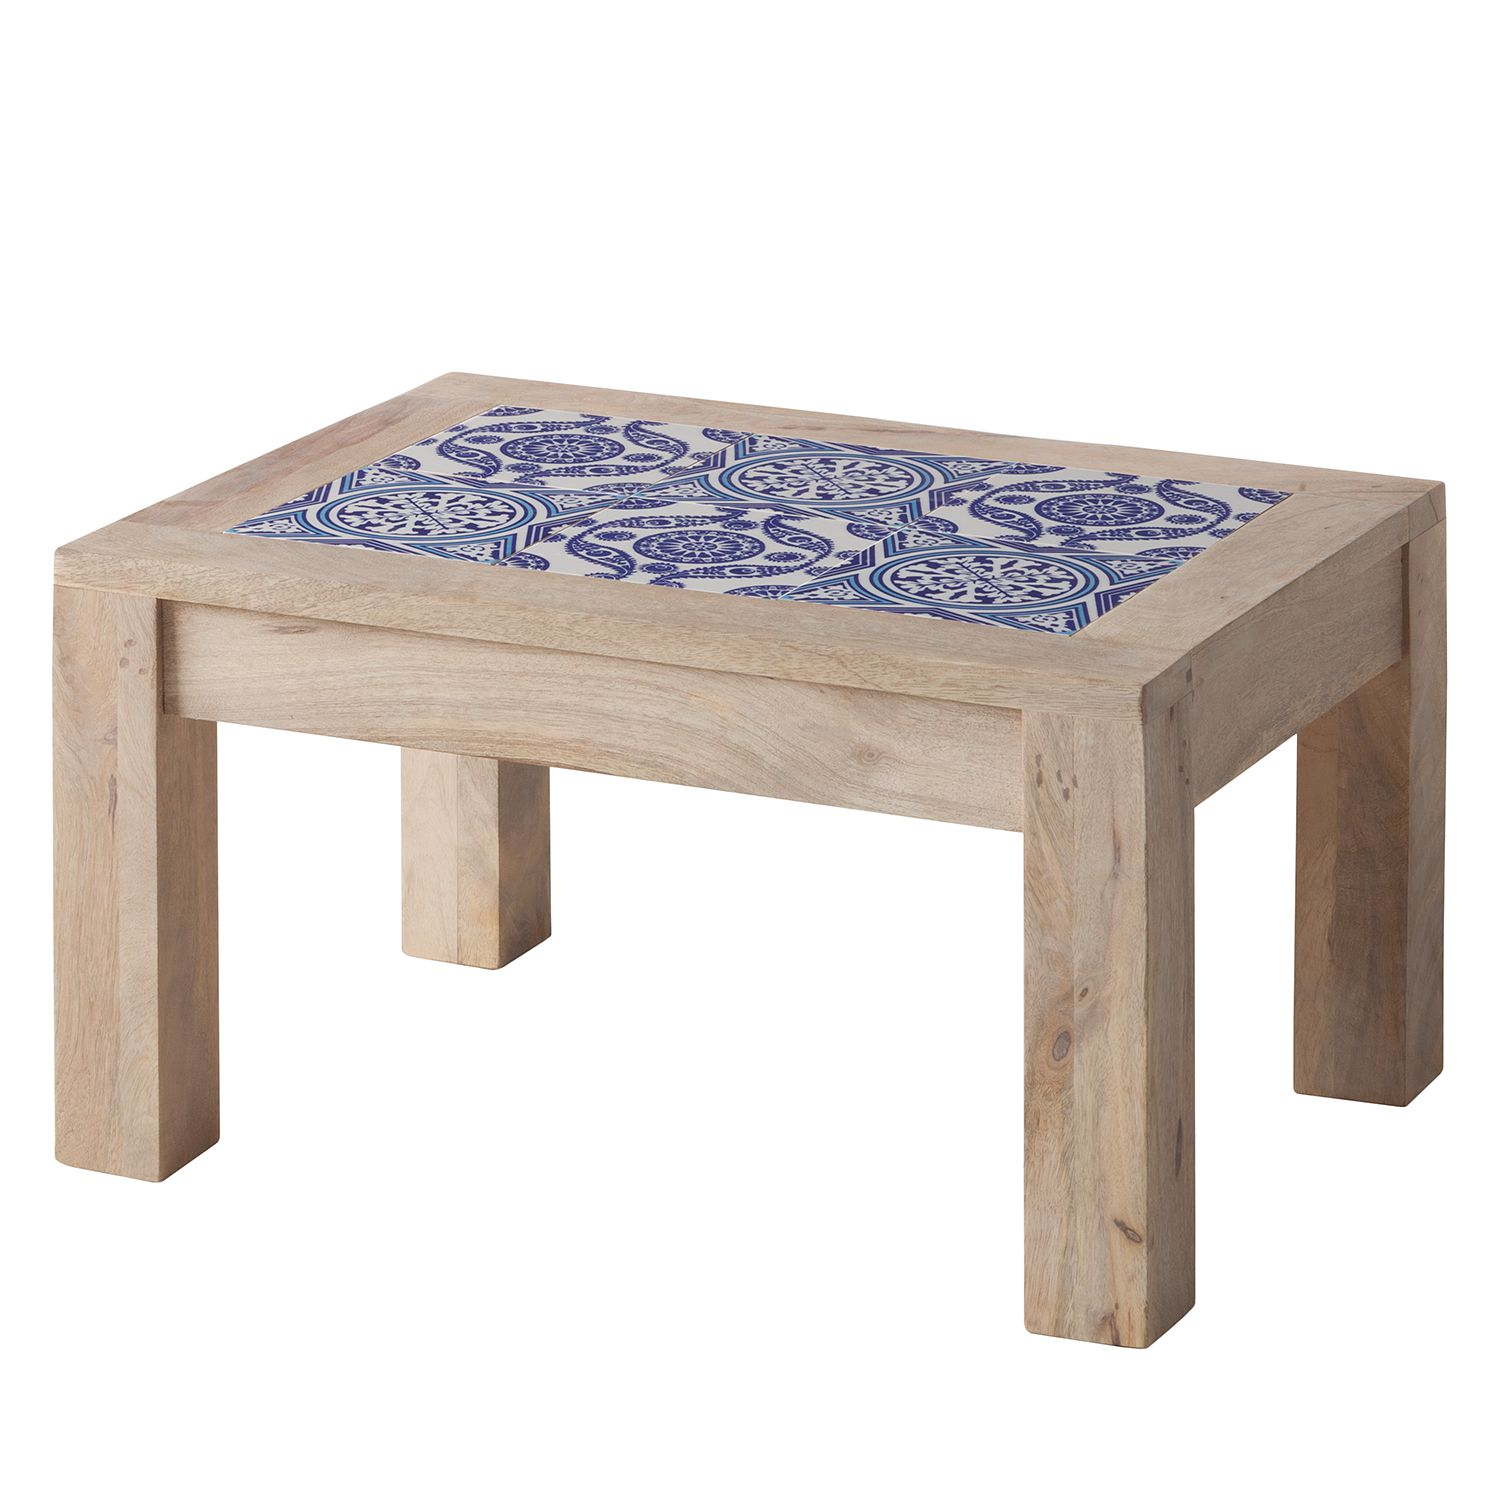 Table d'appoint Ibiza - Manguier massif / Céramique - Manguier / Bleu - 57 x 42 cm, ars manufacti